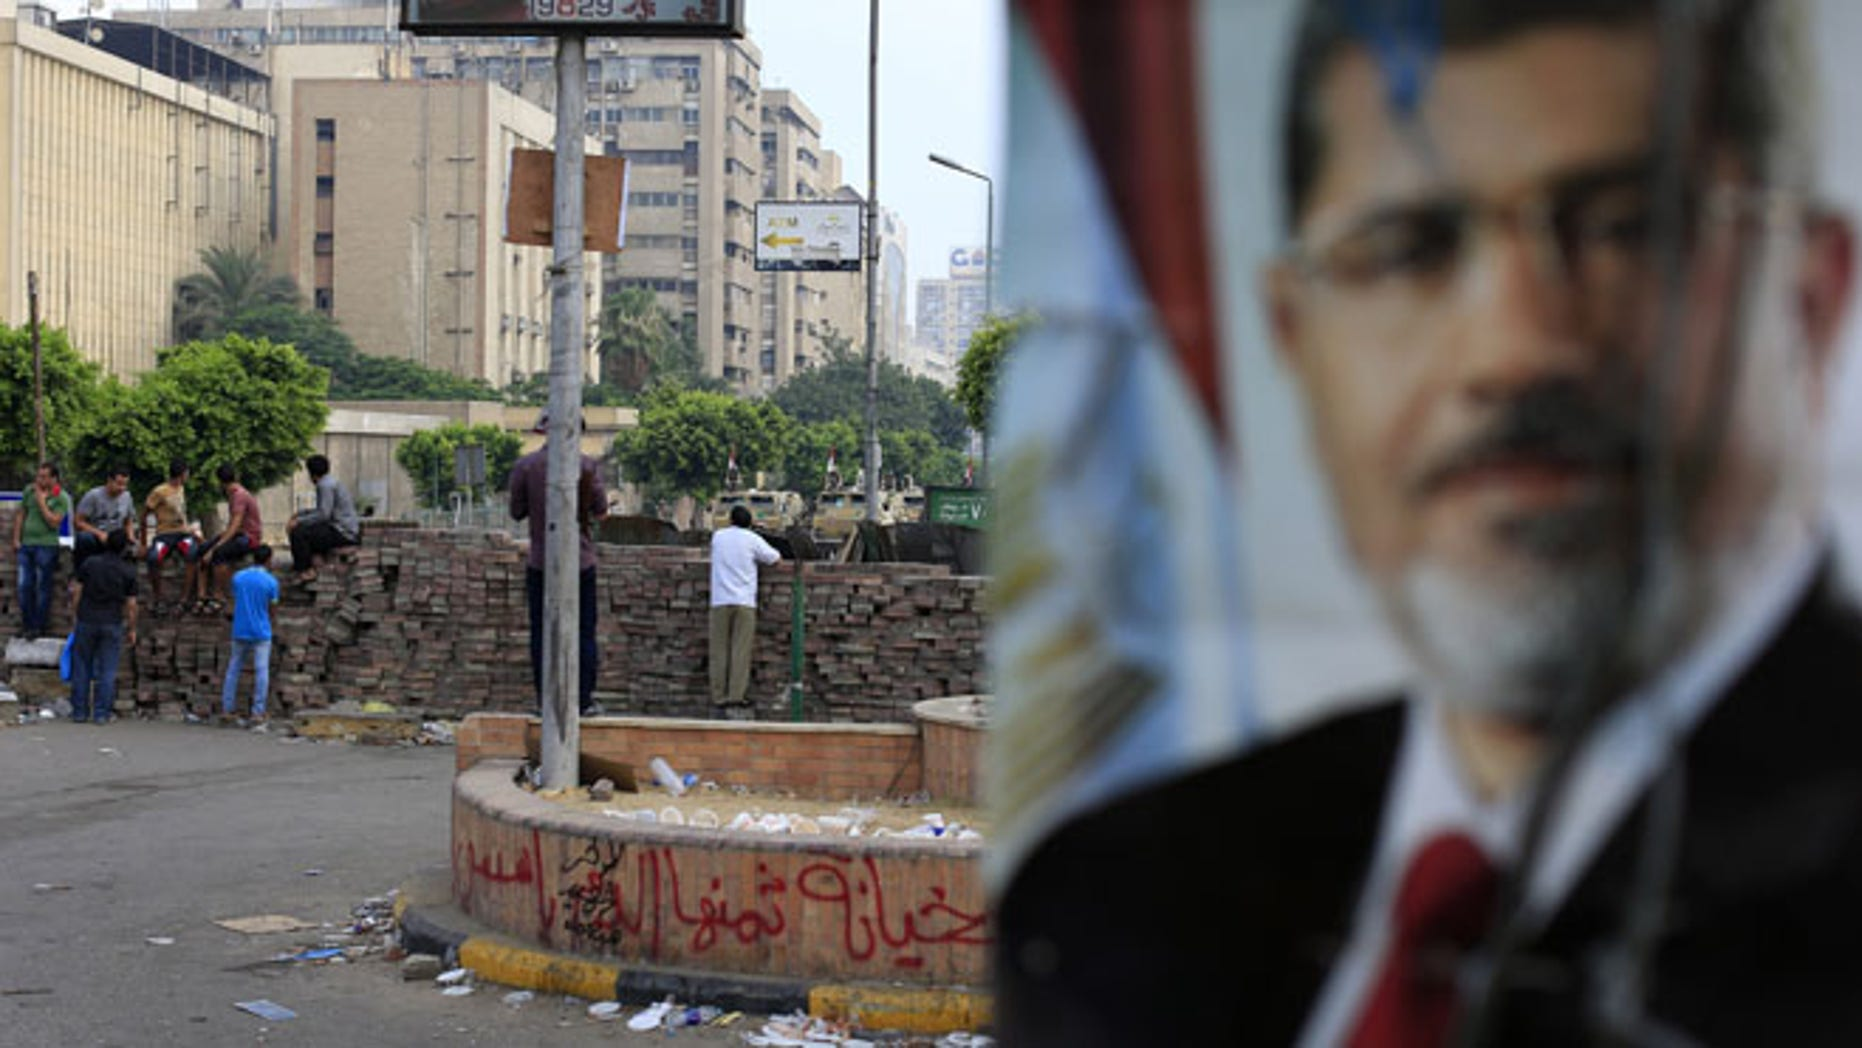 July 10, 2013: Supporters of ousted President Mohammed Morsi protest as army soldiers guard at the Republican Guard building in Nasr City, in Cairo, Egypt.